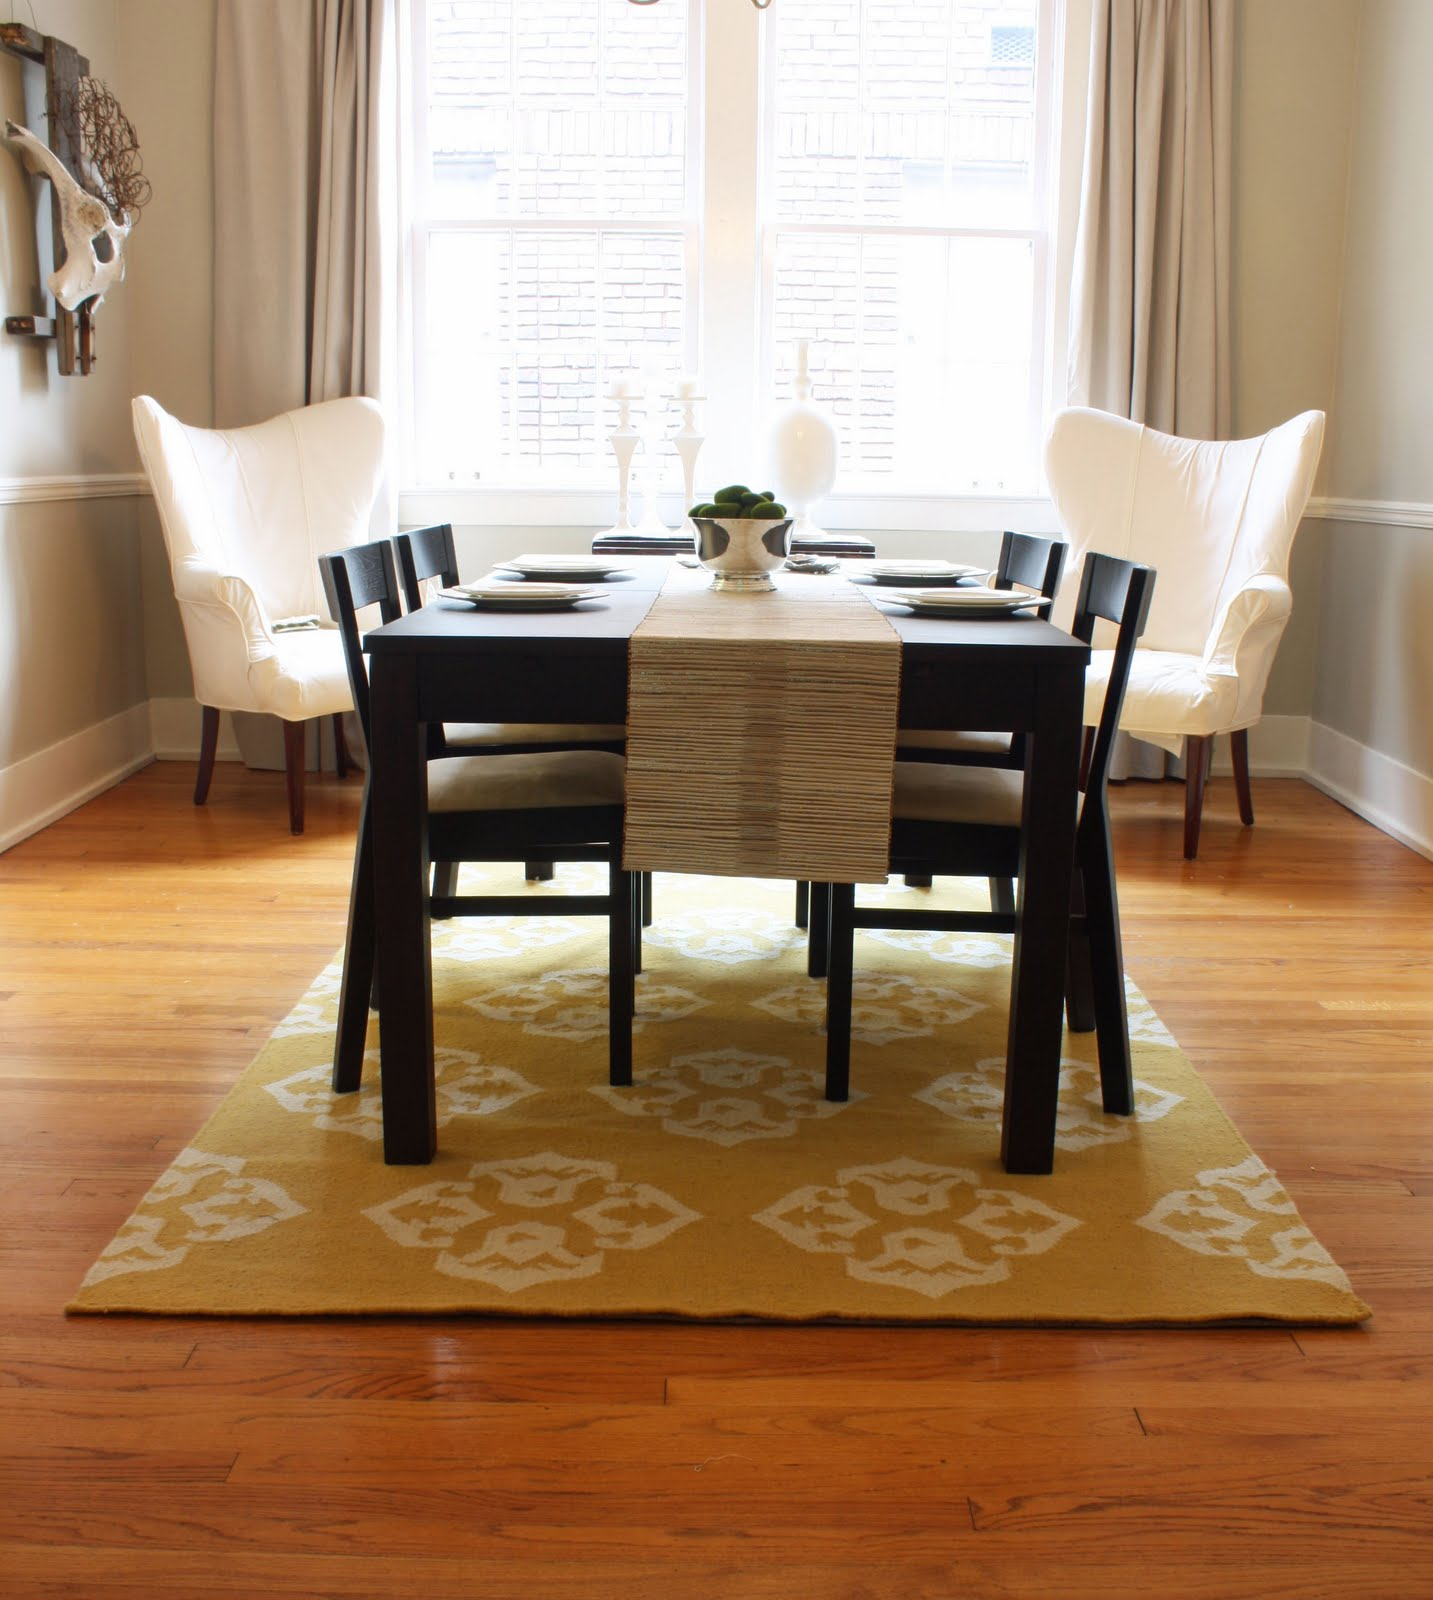 Rug For Dining Room 30 rugs that showcase their power under the dining table